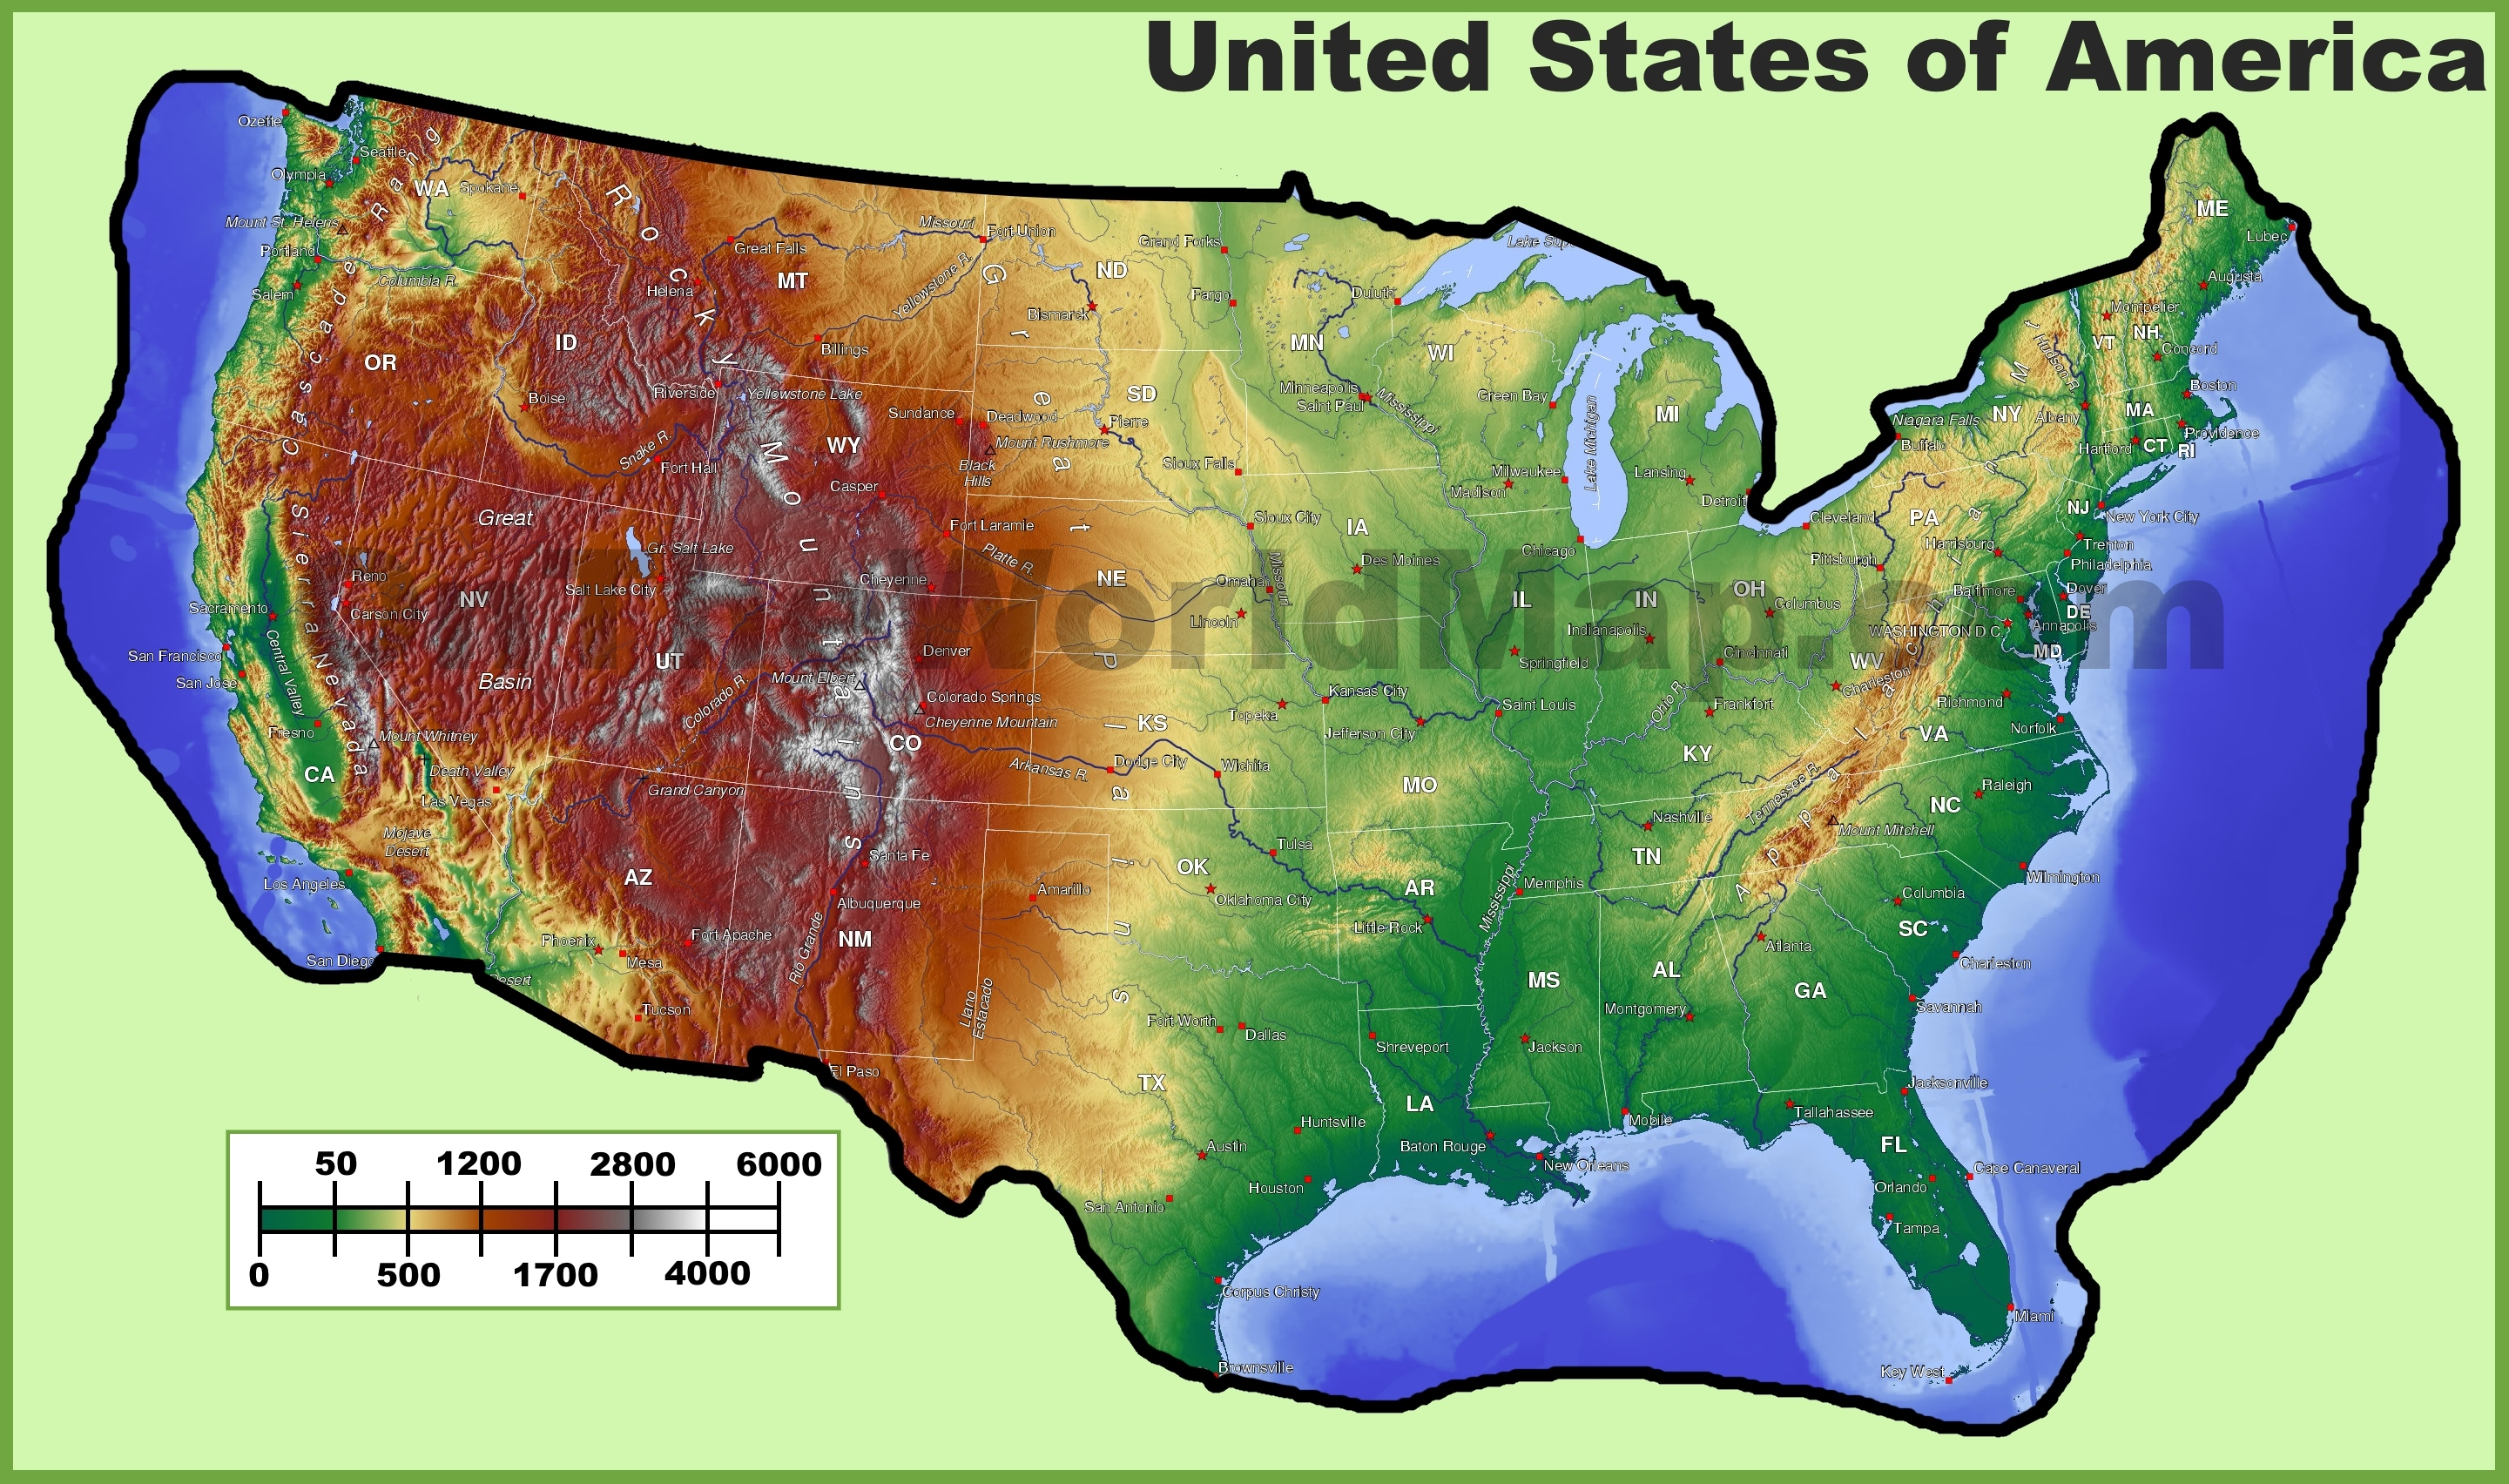 USA Maps Maps Of United States Of America USA US - Photo of usa map